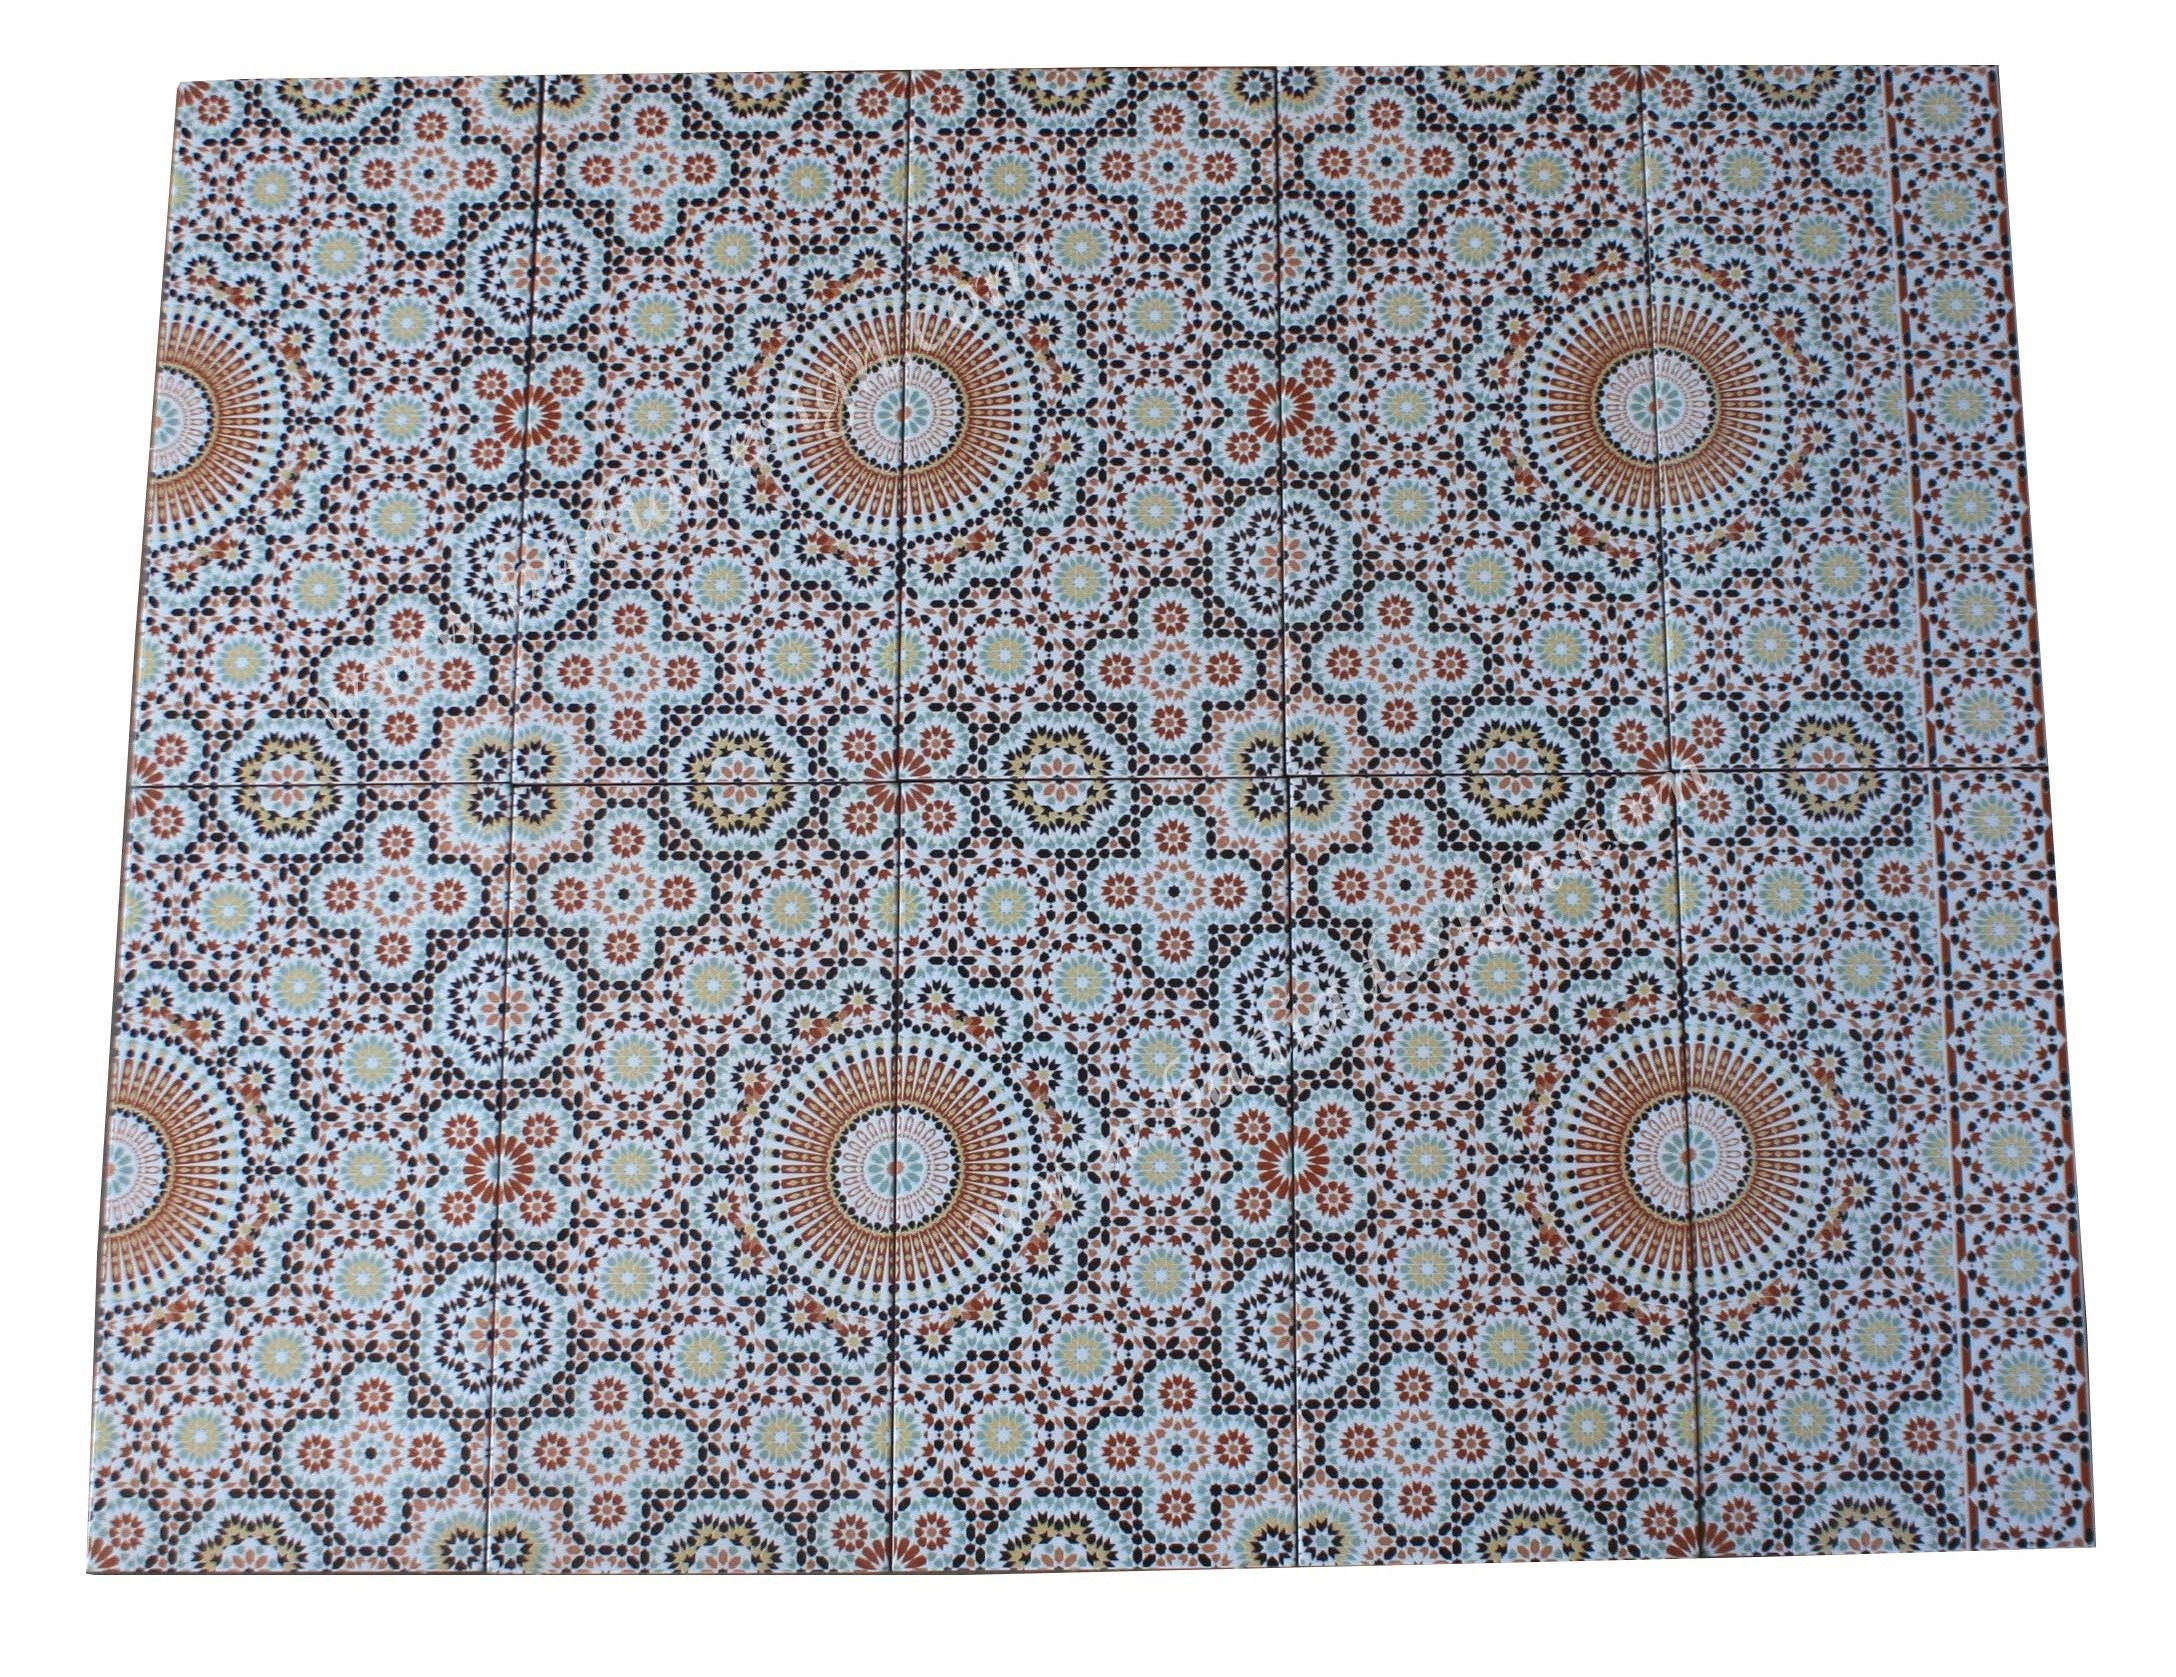 moroccan-fez-tile-los-angeles-ft018-1.jpg